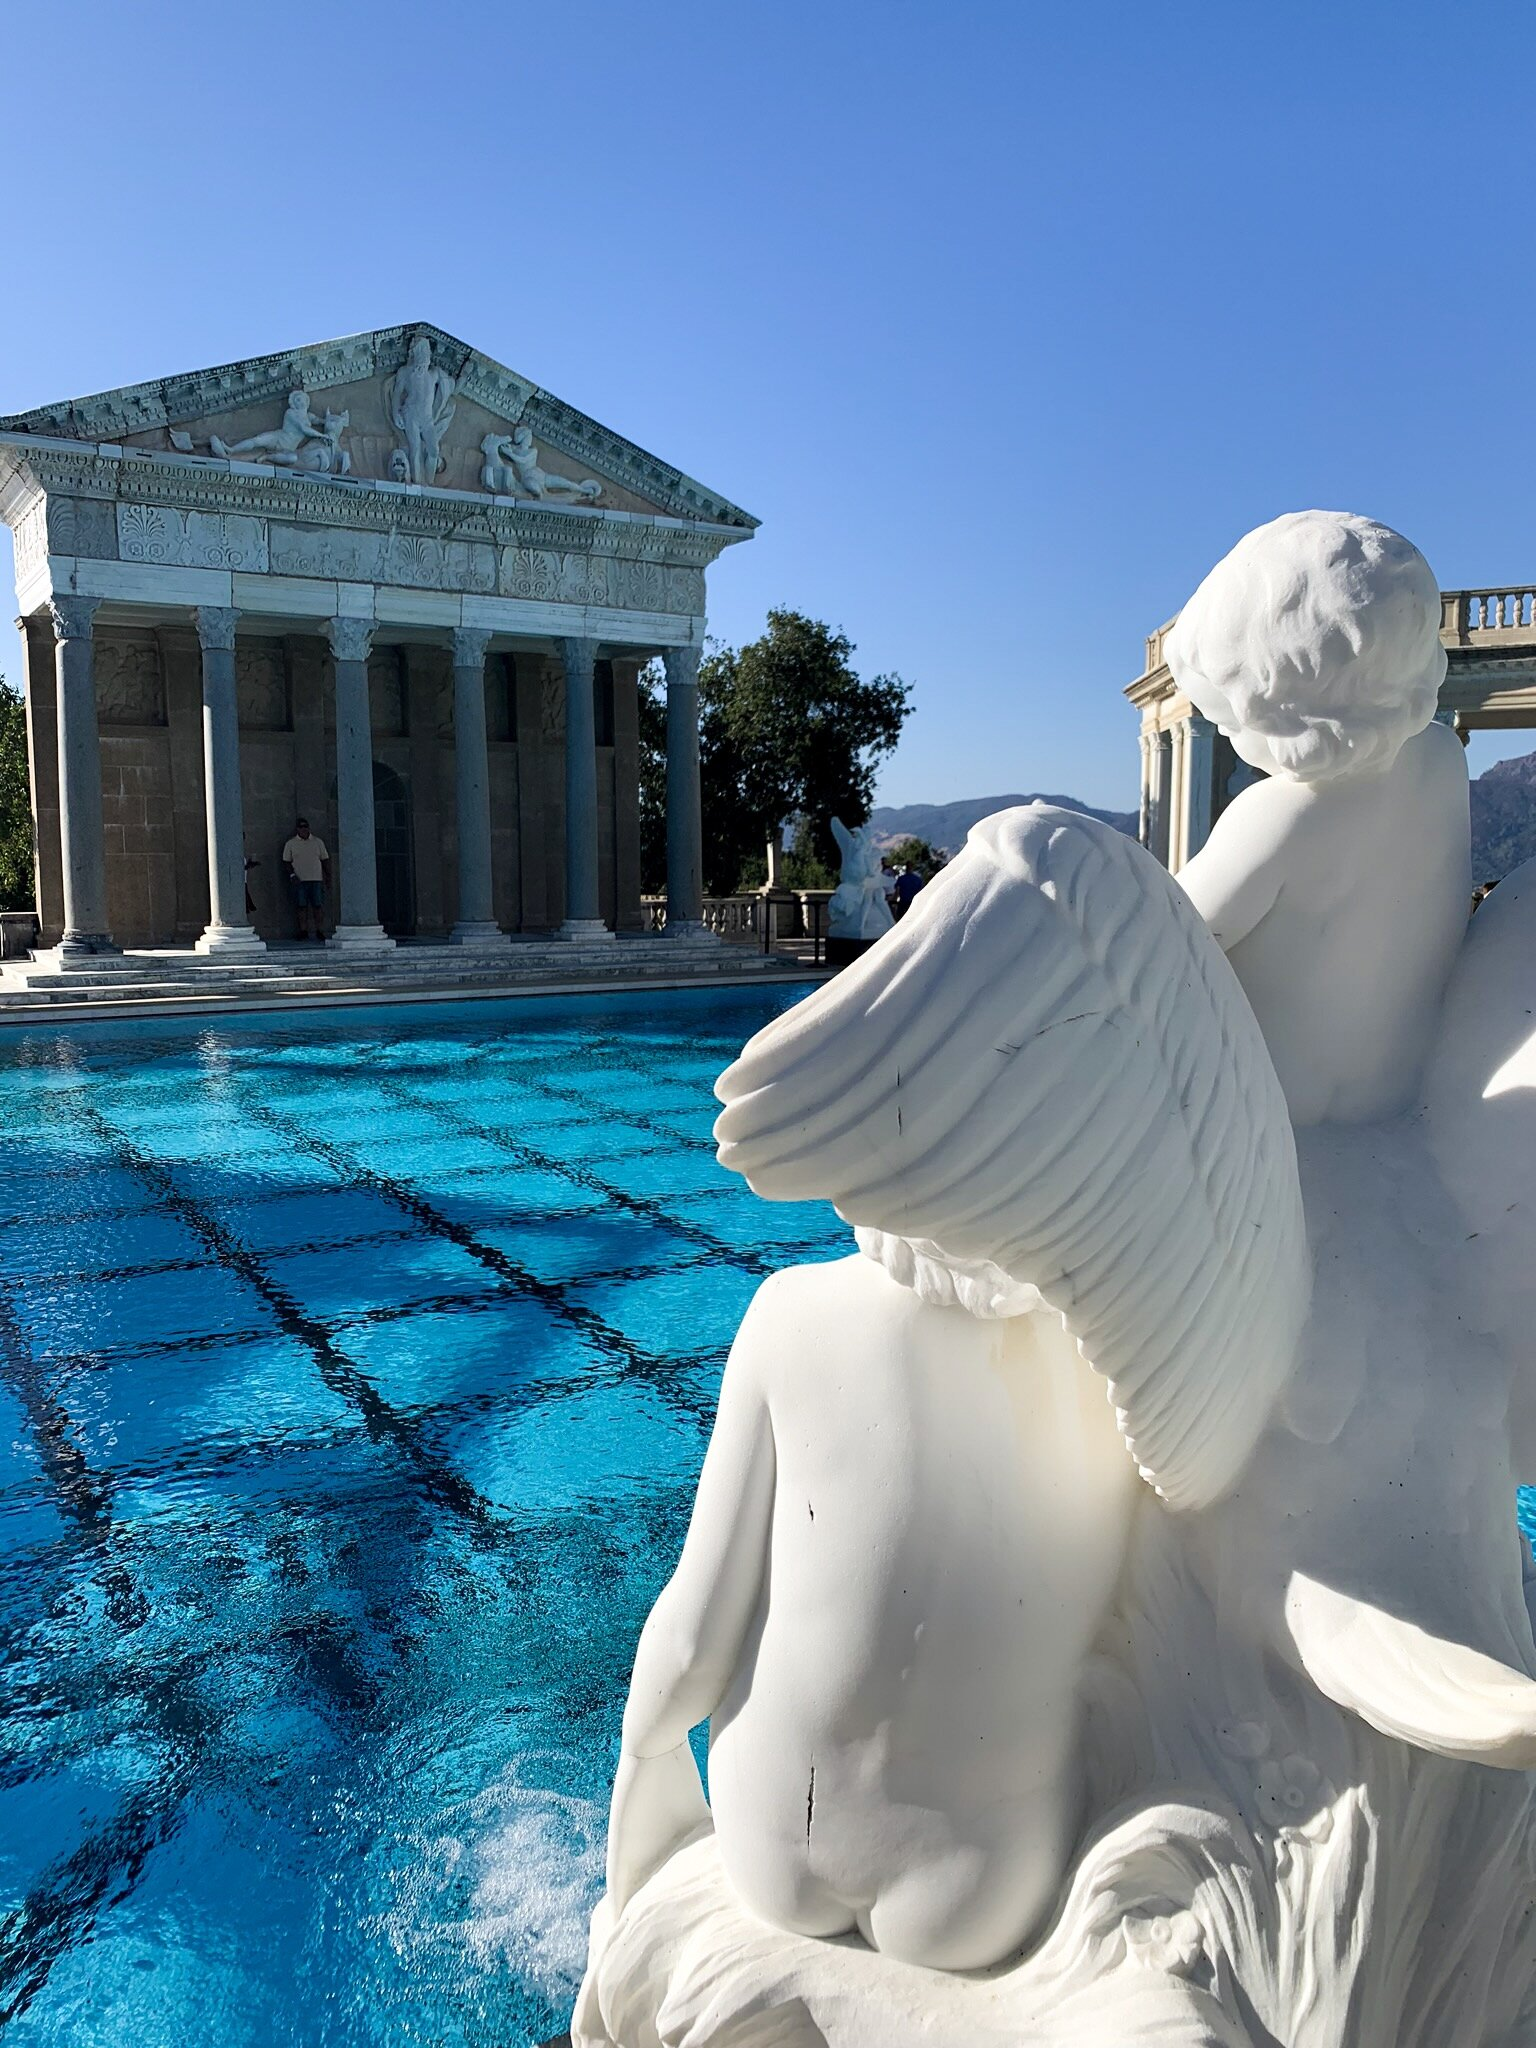 Hearst Castle outdoor pool, Roman columns and statue